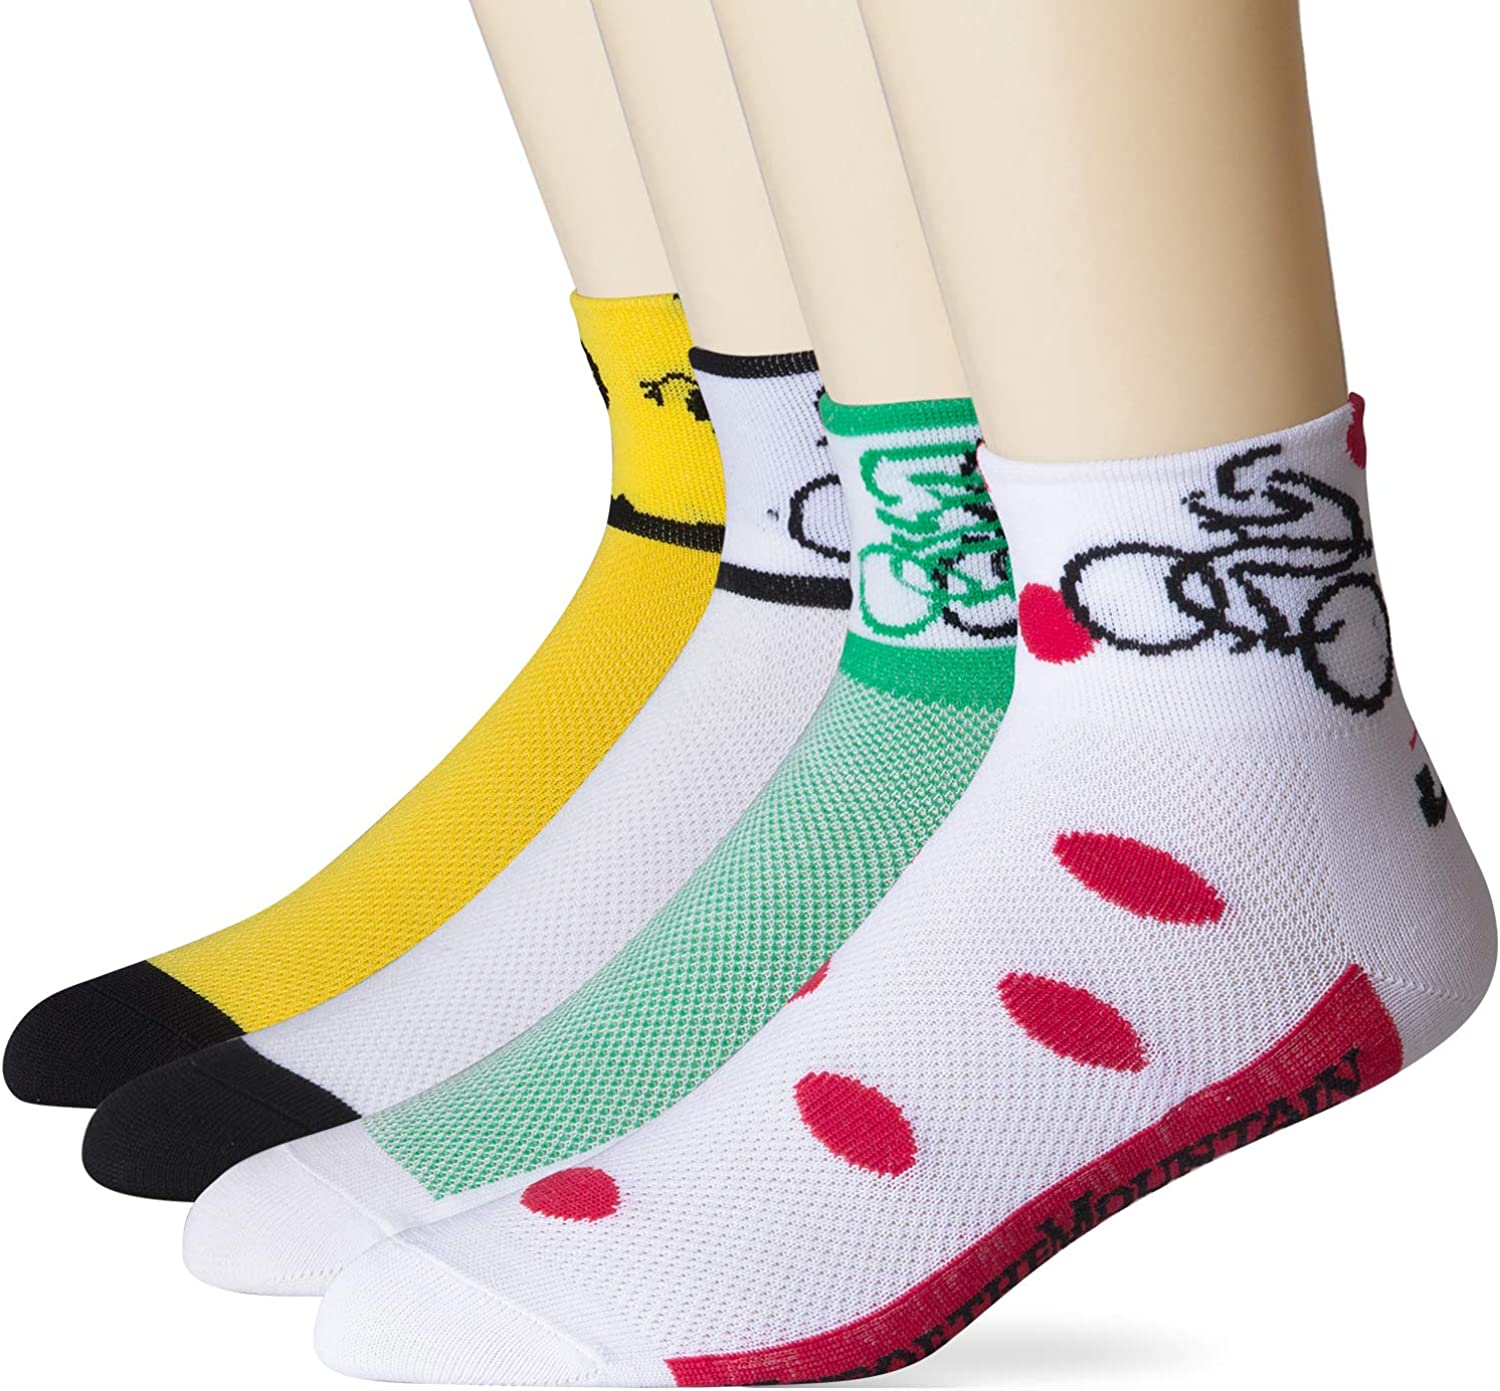 Armstrong Norfolk Branded Mens Cushioned Biking//Cycling//Sport Socks